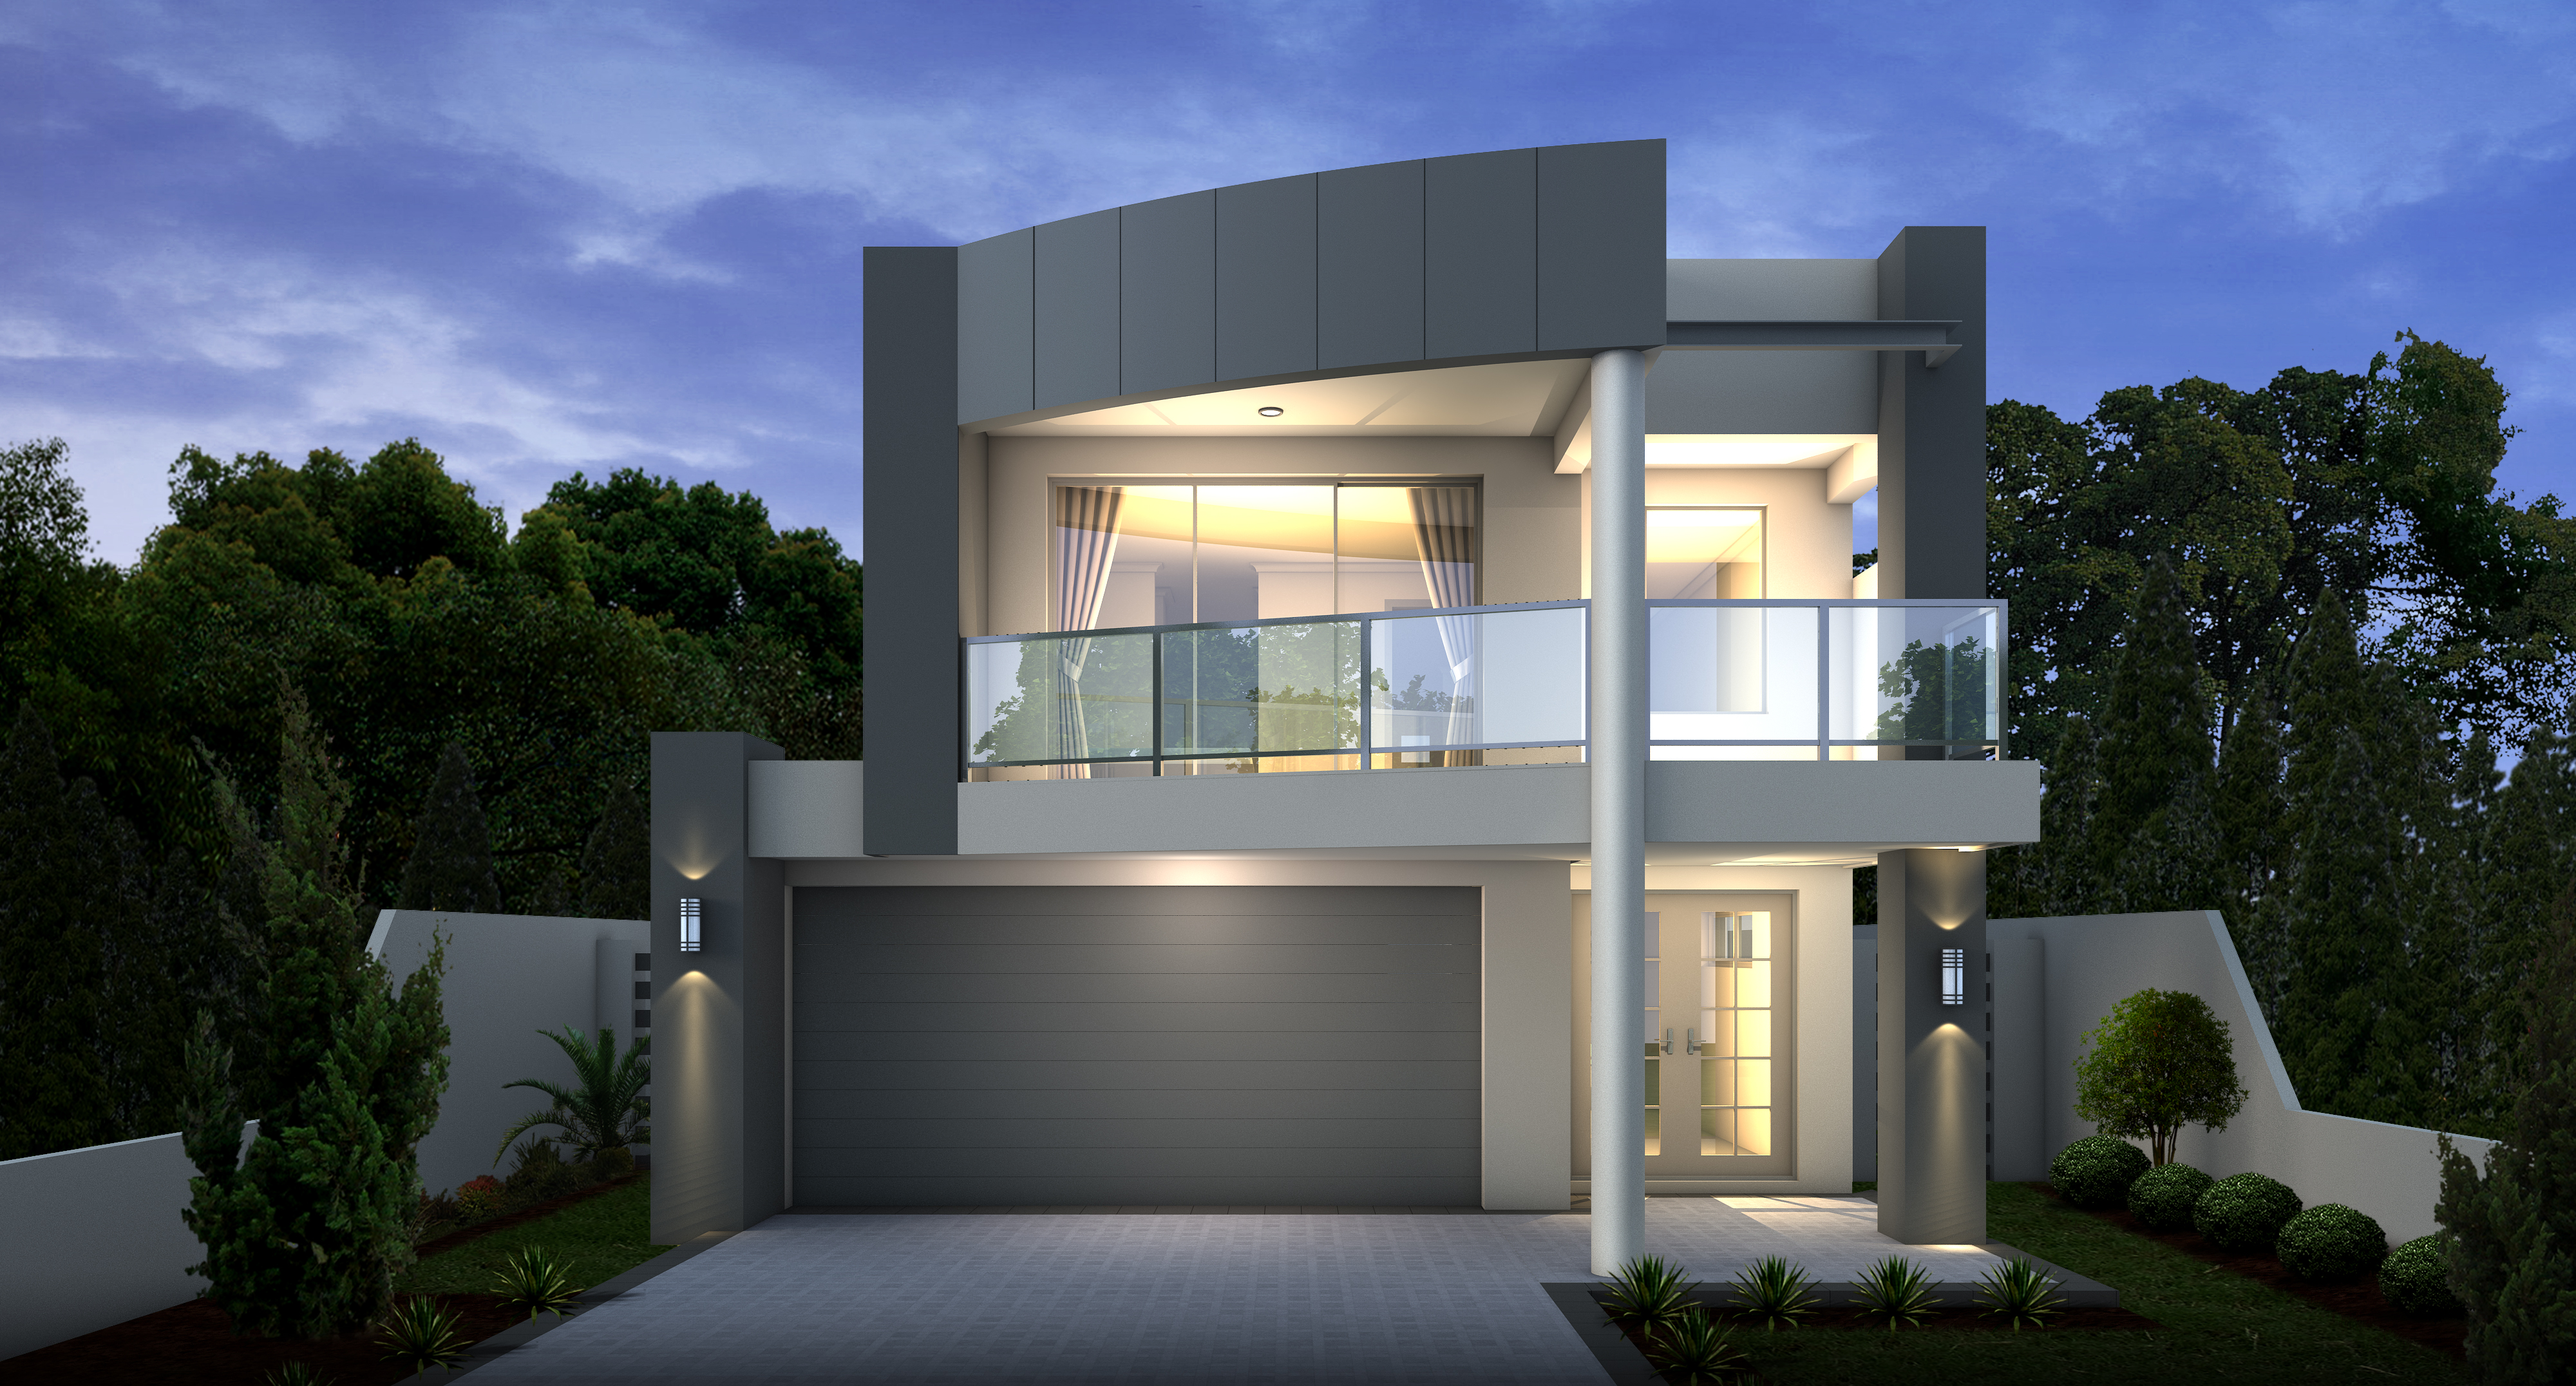 The virage modern 2 storey homes mandurah perth wa Home design latest